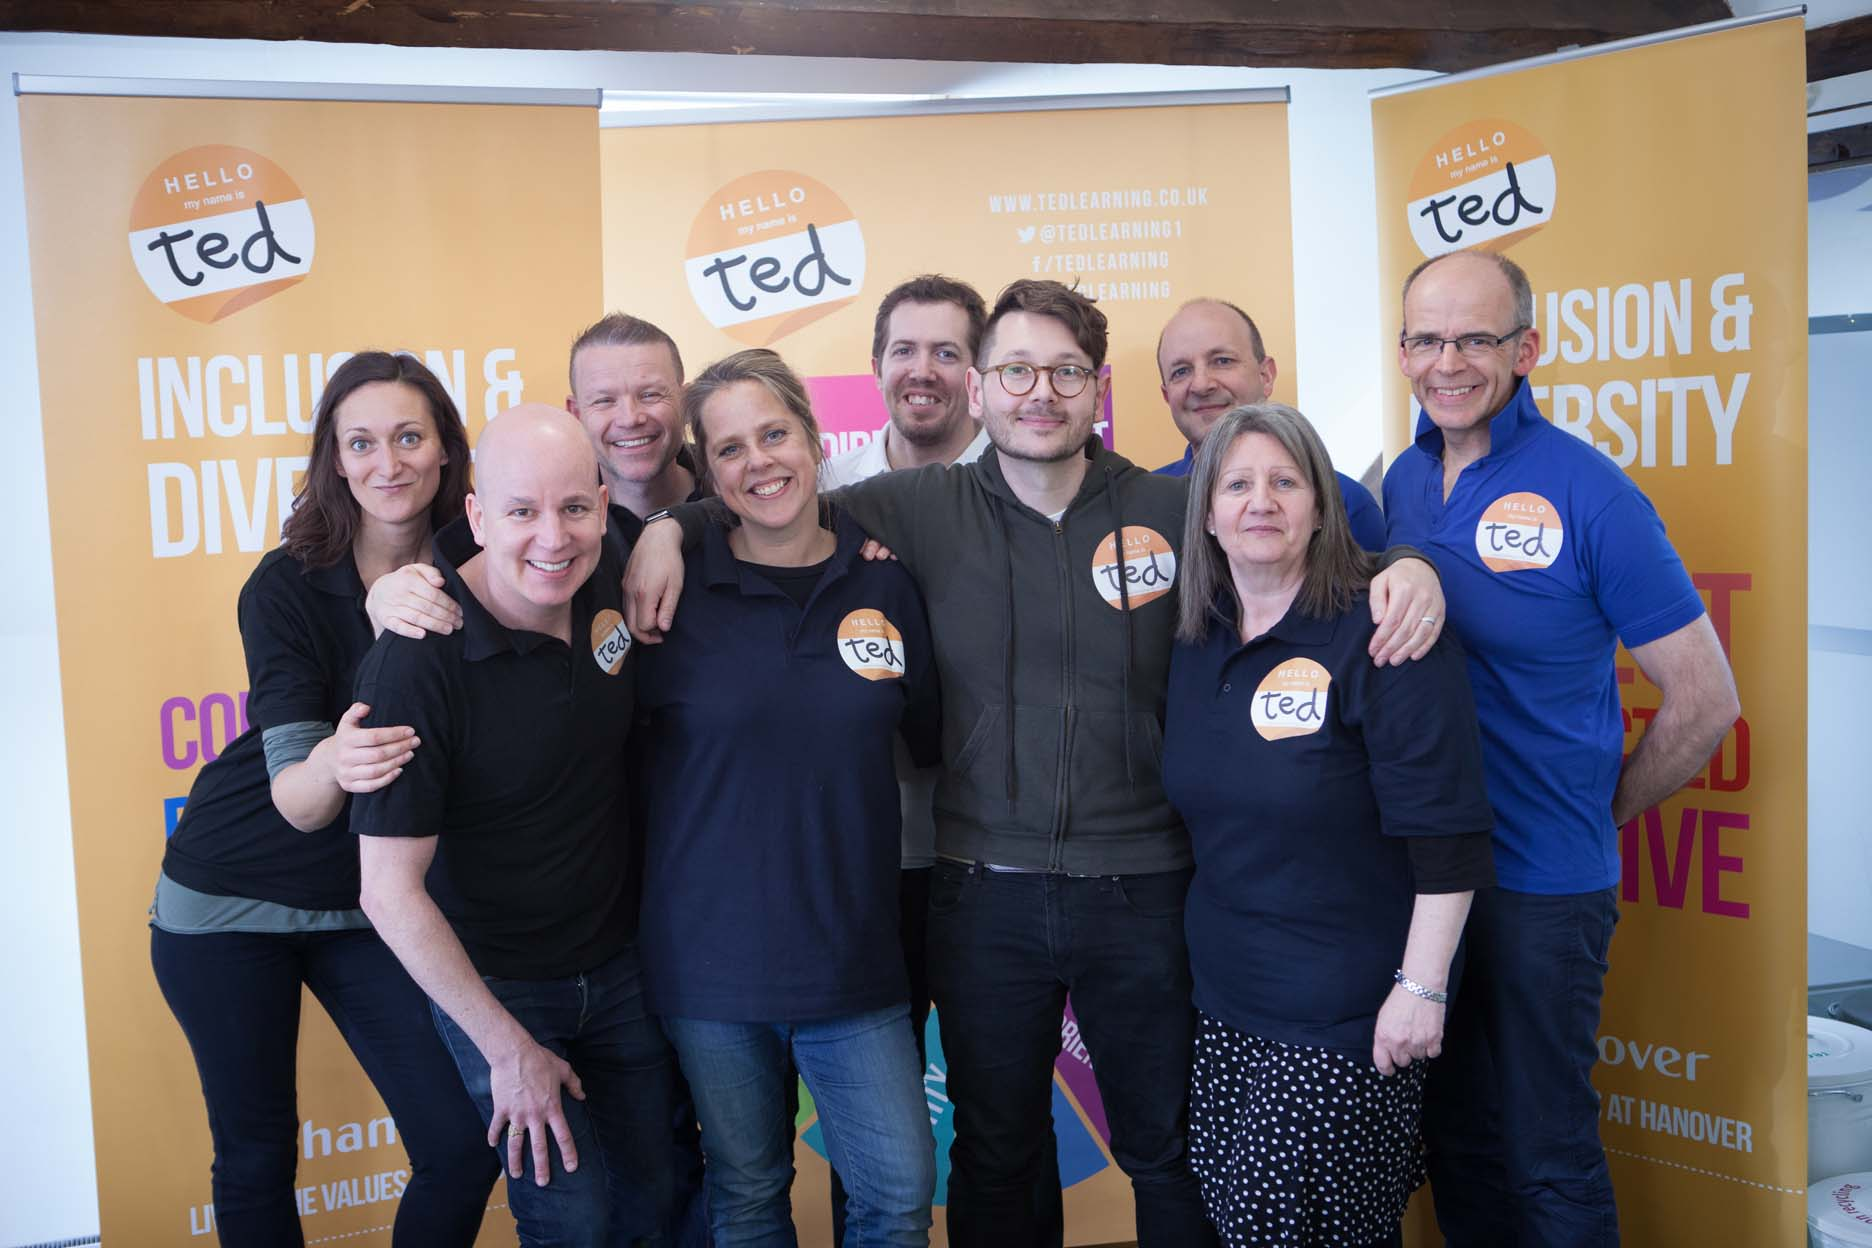 ted Learning - team working skills